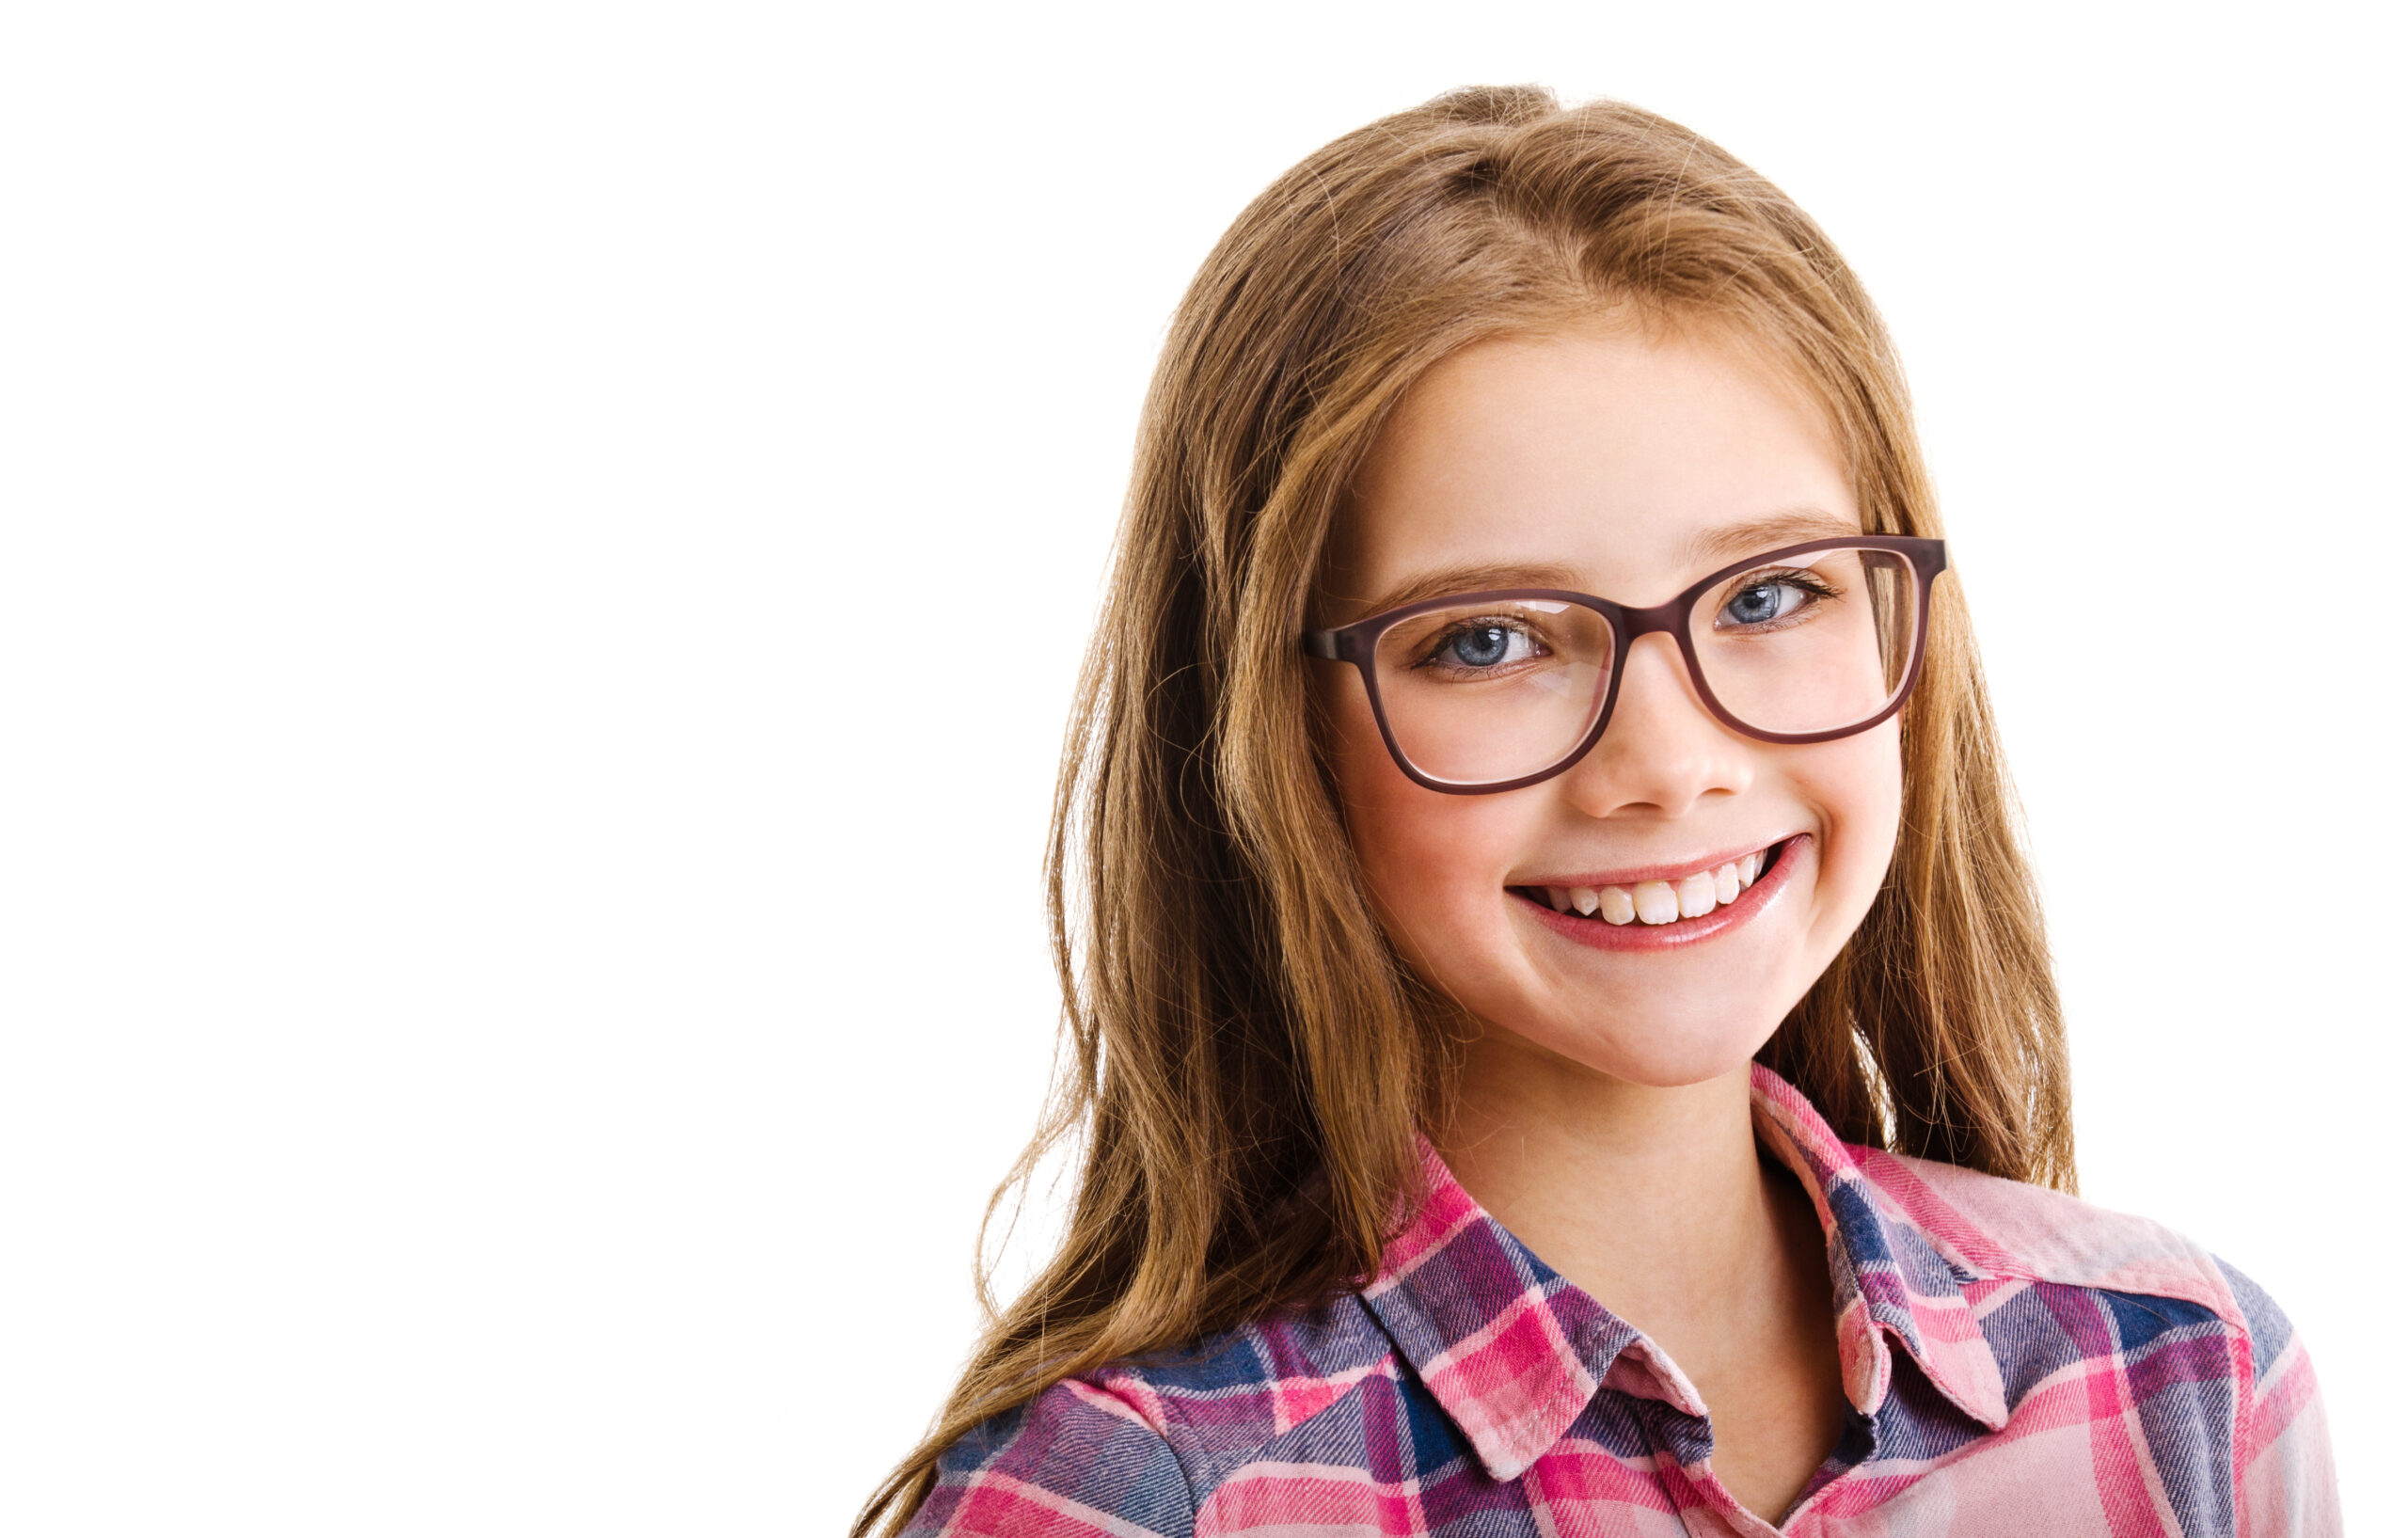 Smiling cute little girl child teen in eyeglasses education, school and vision concept isolated on a white